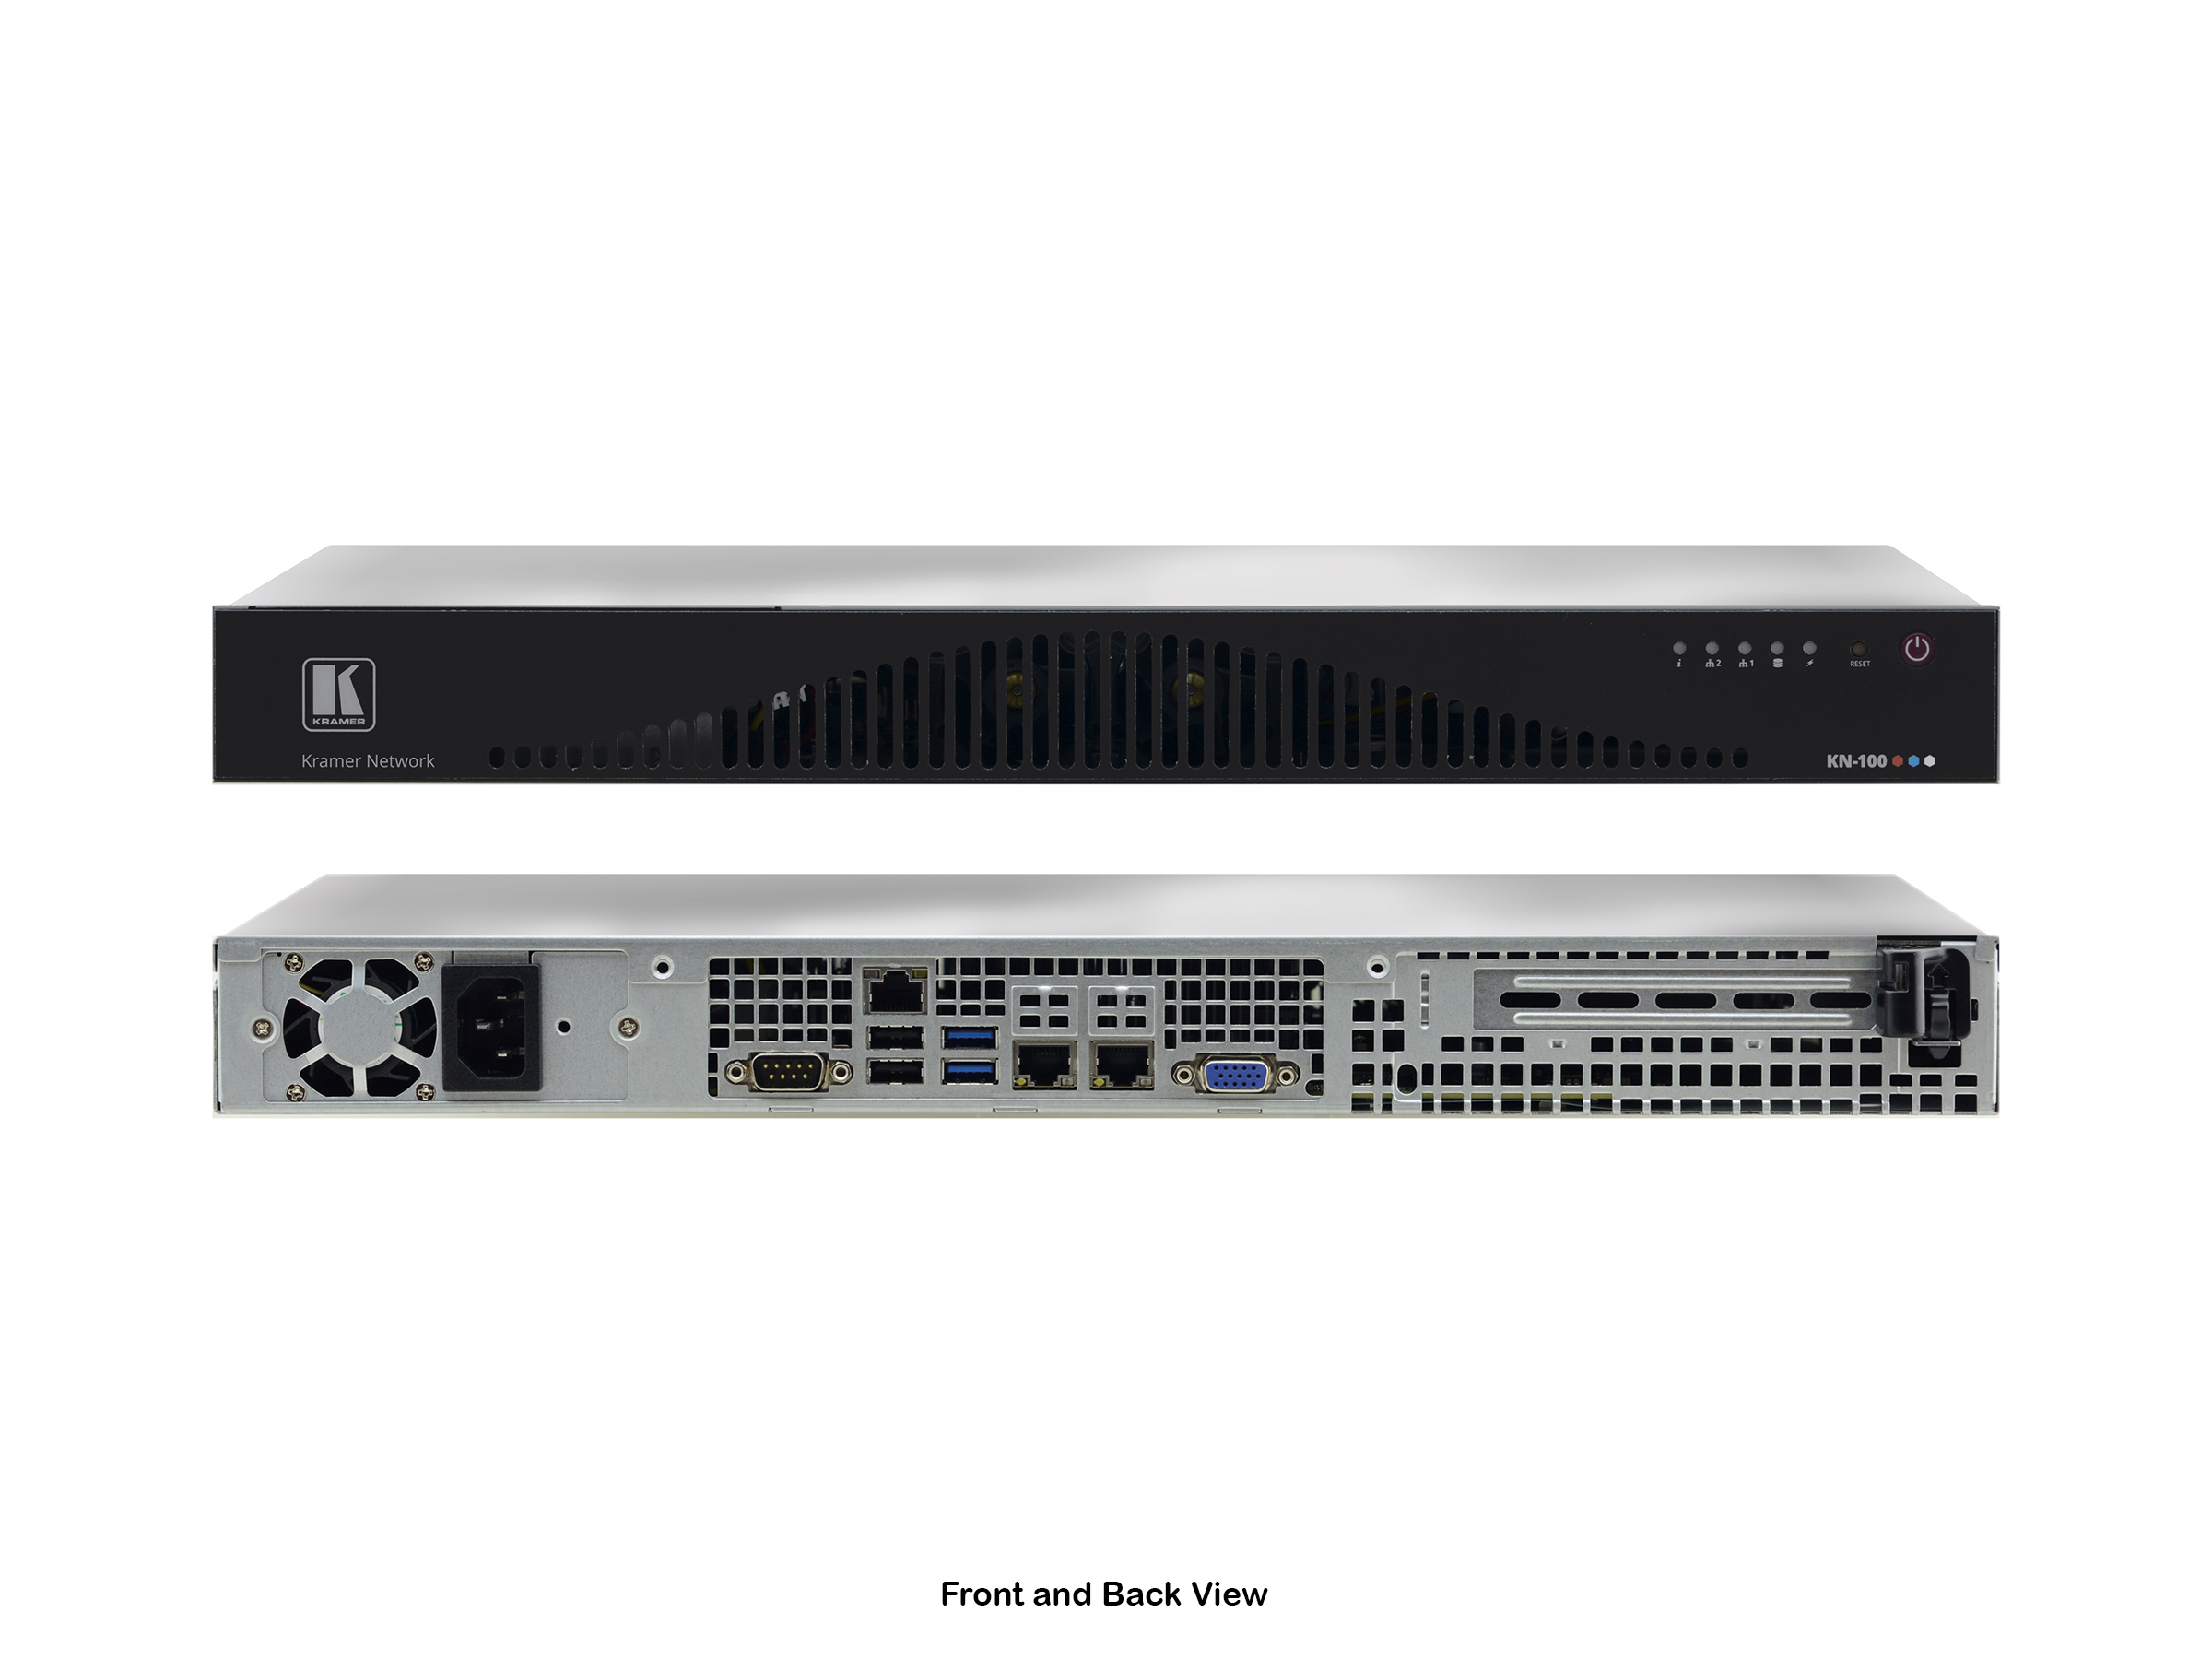 KN-100 Network Powered Server with Pre-installed Management Software by Kramer